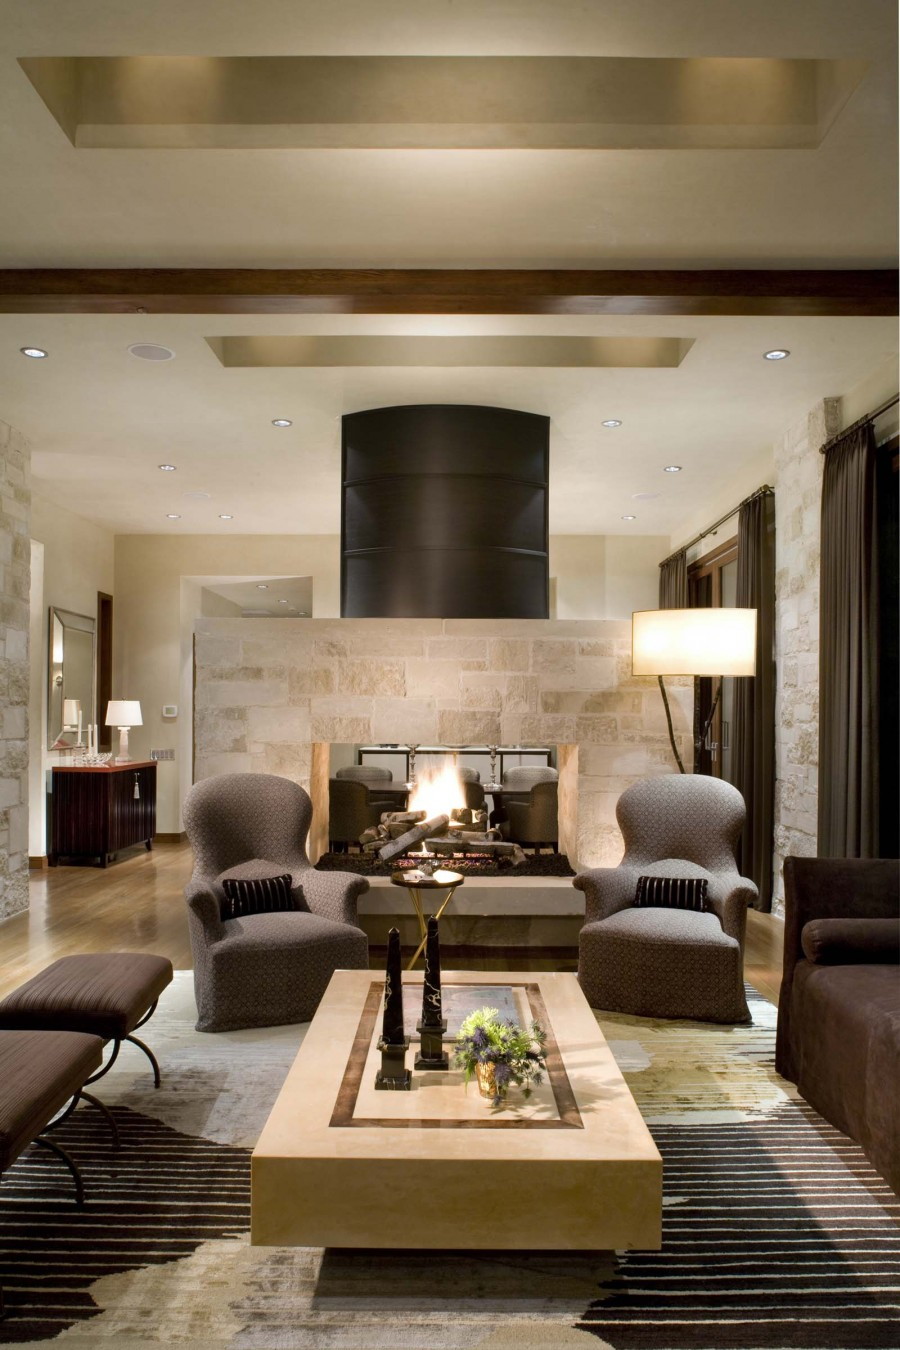 16 fabulous earth tones living room designs decoholic for Interior design living room elegant